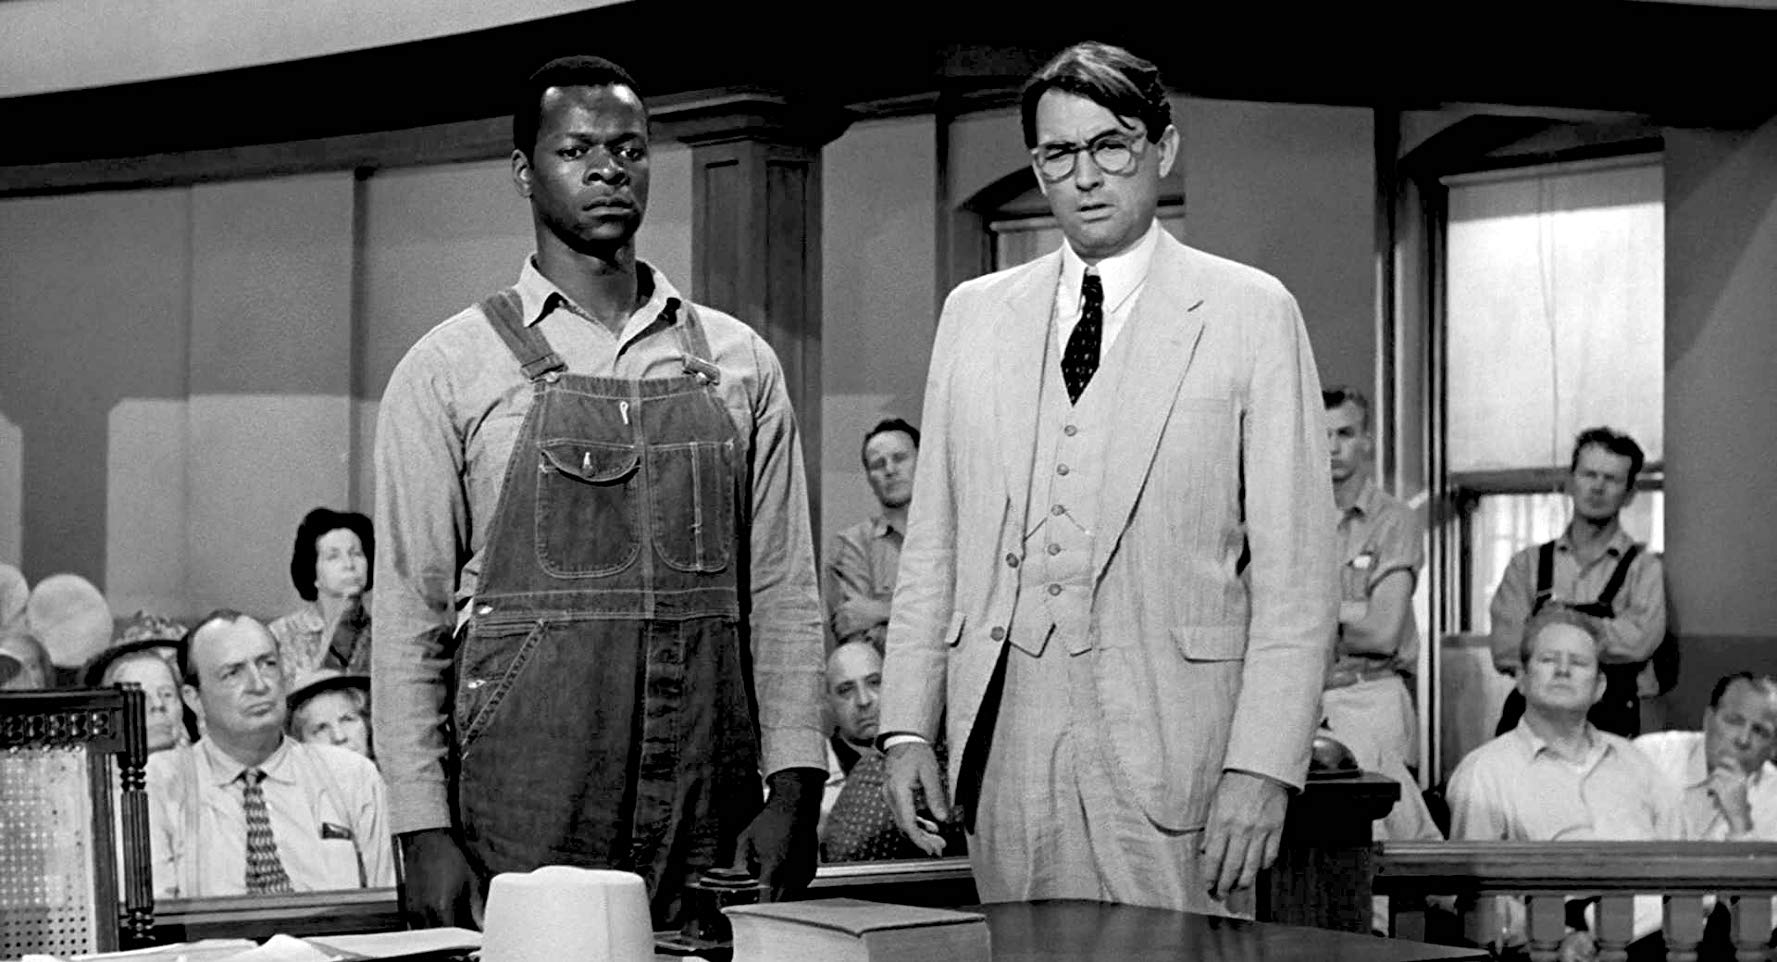 Tom Robinson and Atticus Finch during the trial